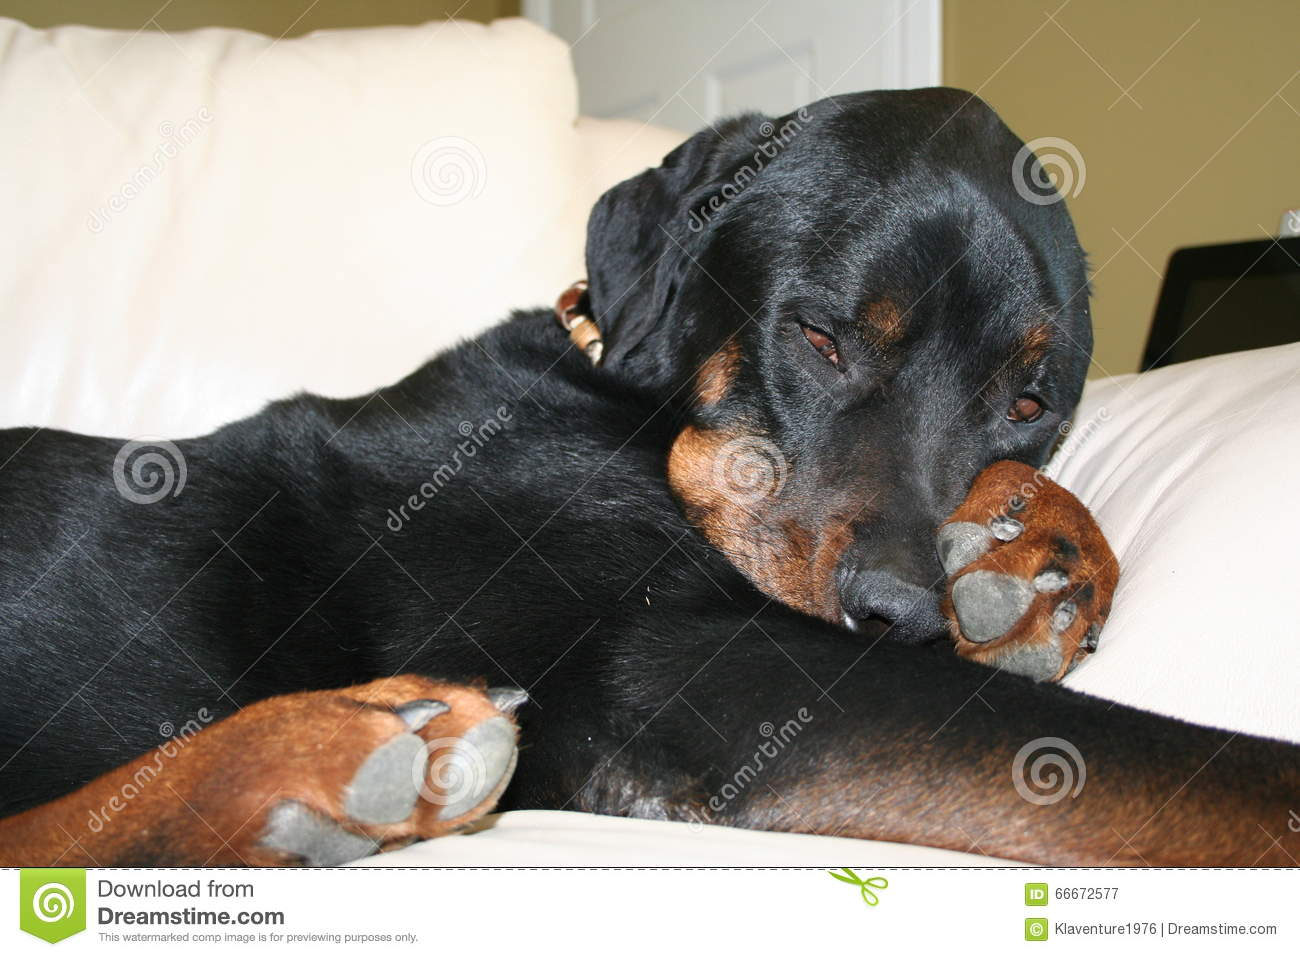 Rottweiler Napping On Couch Stock Image - Image of rottie